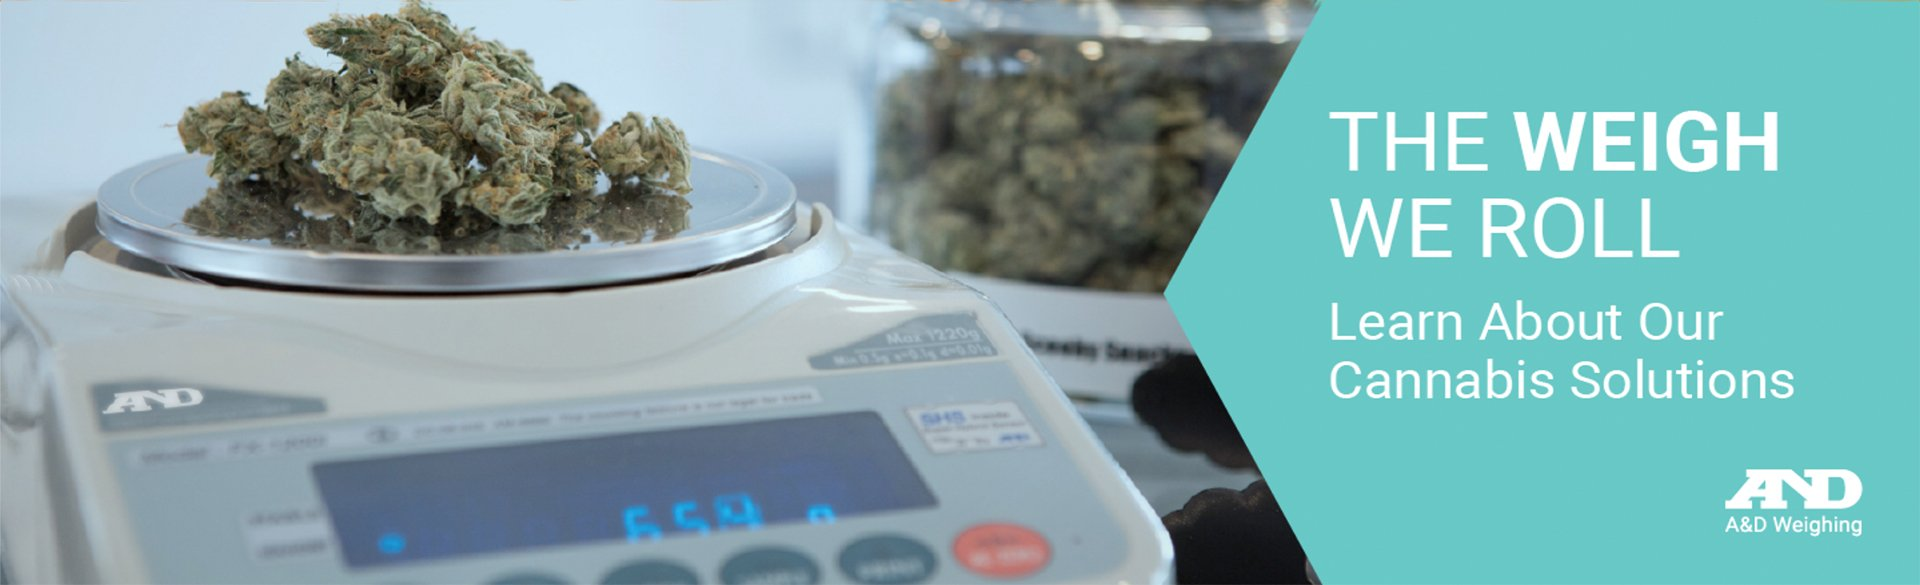 A&D Weighing Cannabis Scales